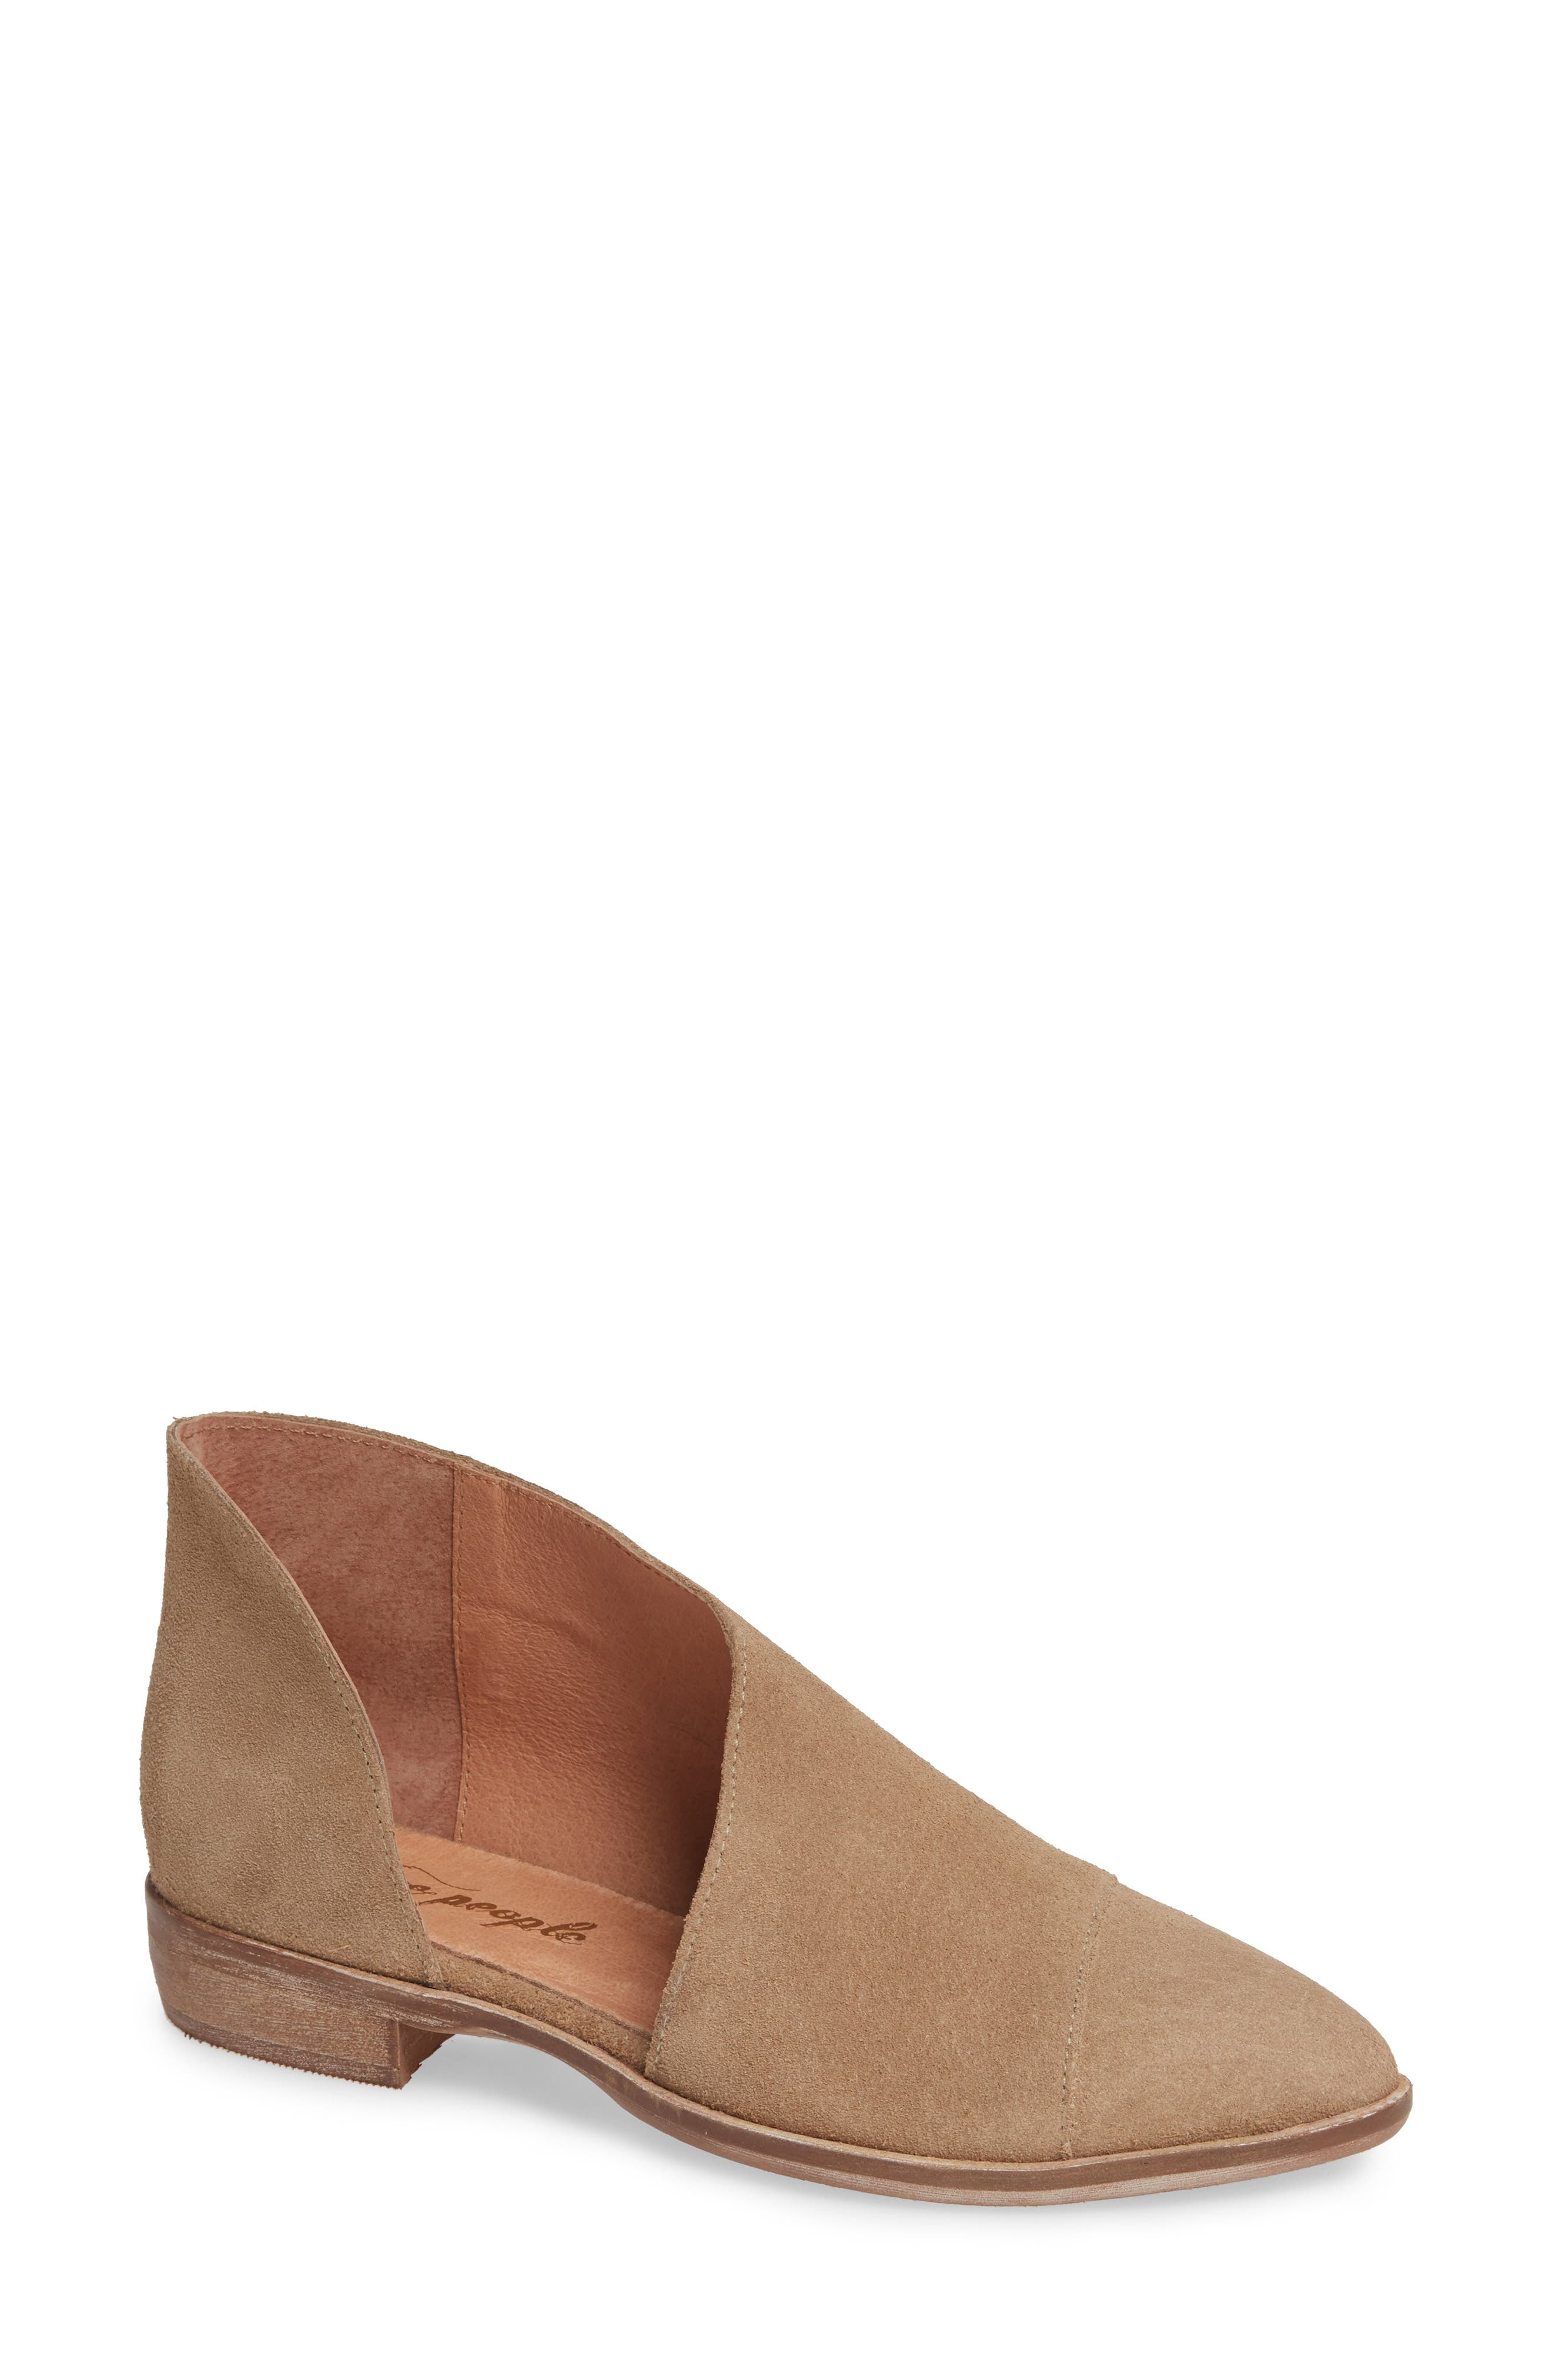 'Royale' Pointy Toe Flat,                             Main thumbnail 1, color,                             BEIGE SUEDE